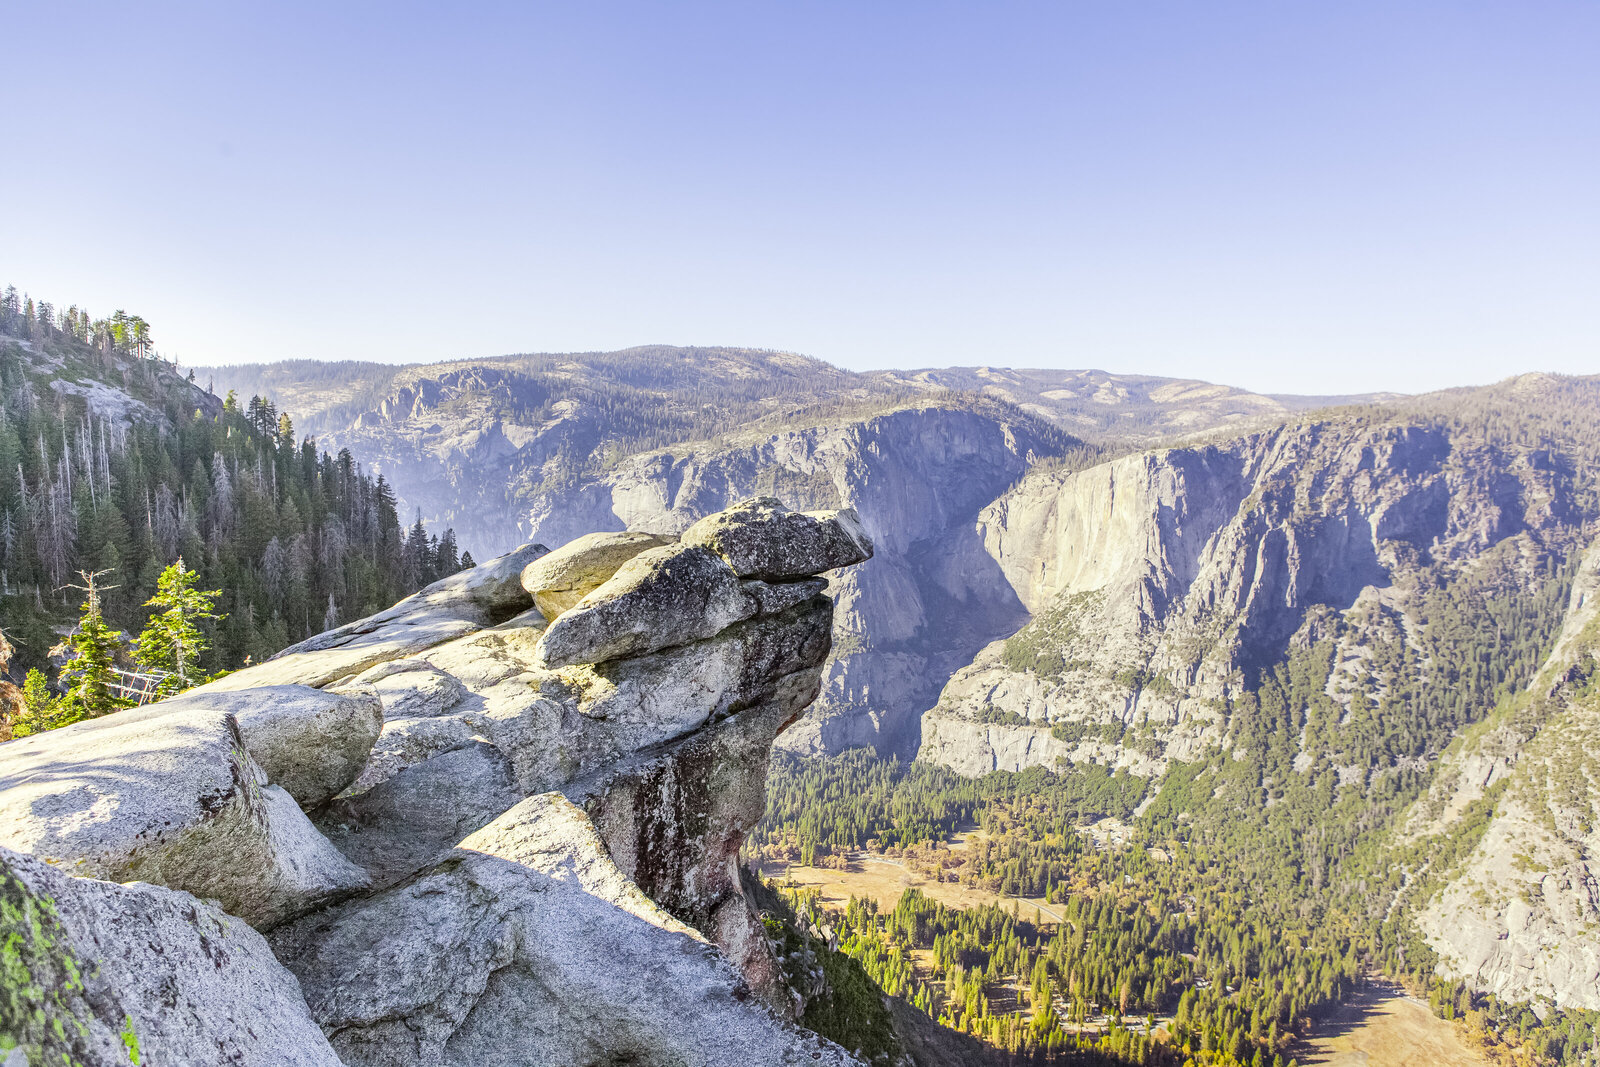 082-KBP-Yosemite-National-Park-005